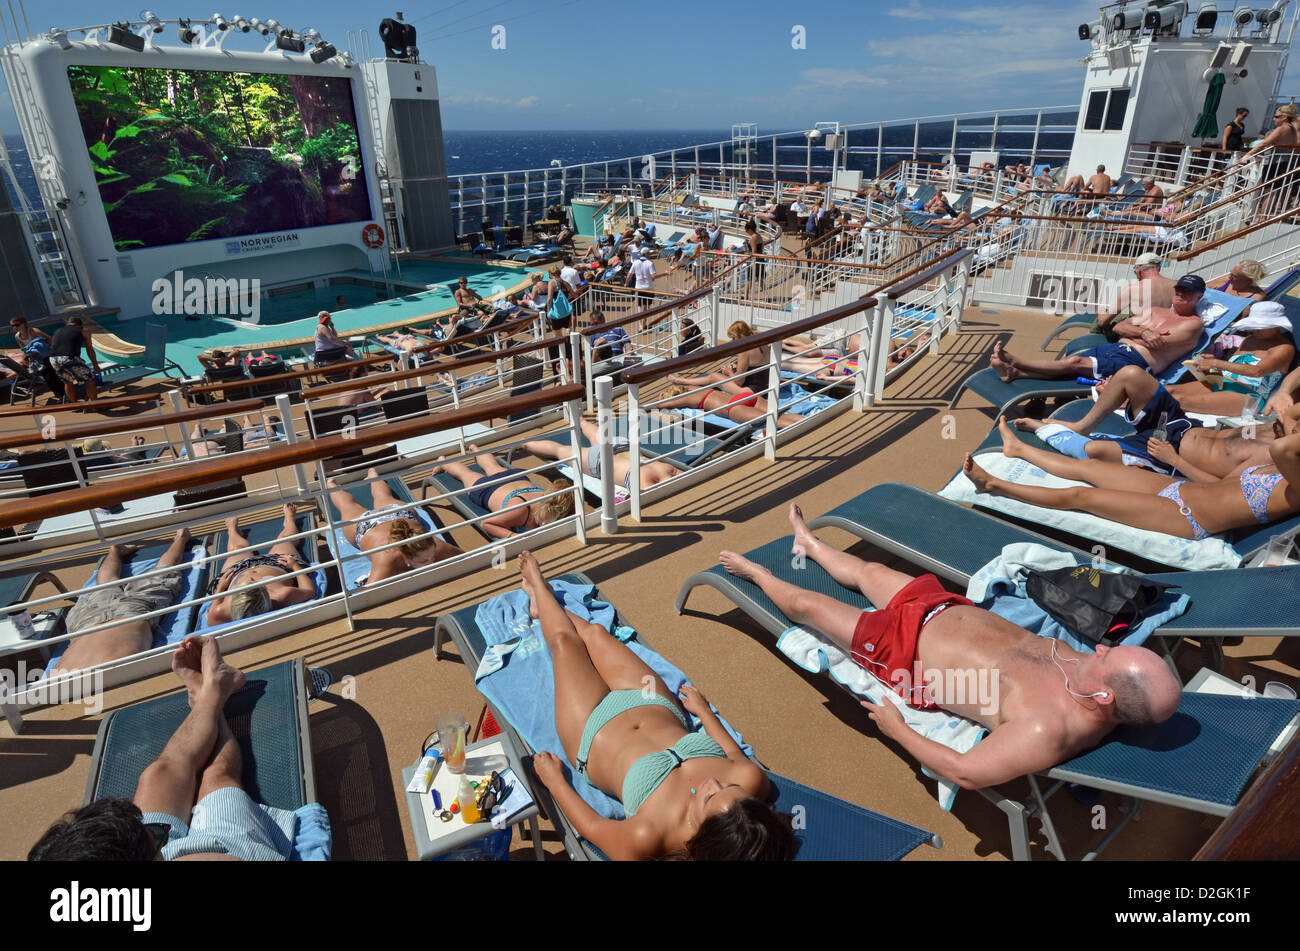 Passengers Sunbathing At Sea On The Aft Deck Of The Cruise Ship - What is aft on a cruise ship